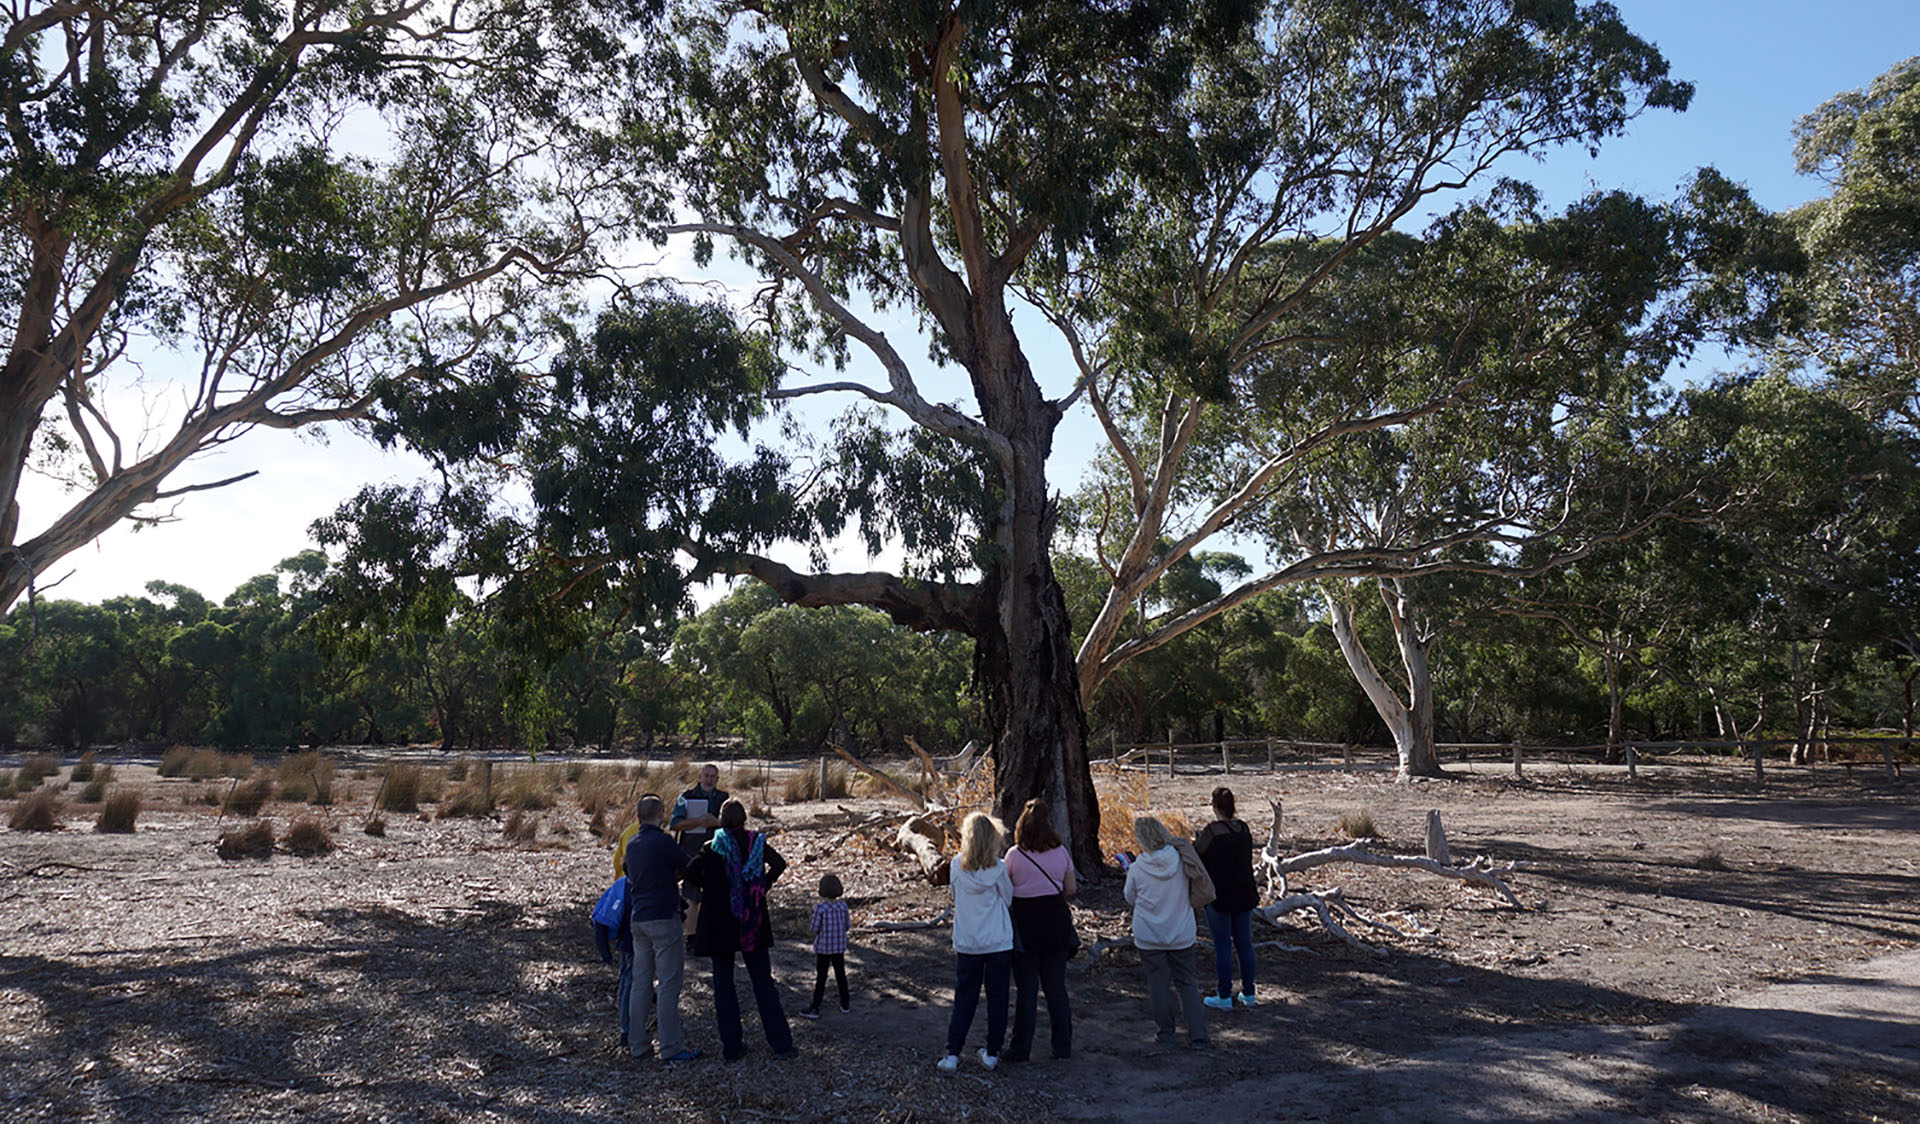 A ranger with a group of people in the shade of a tree at Braeside Park